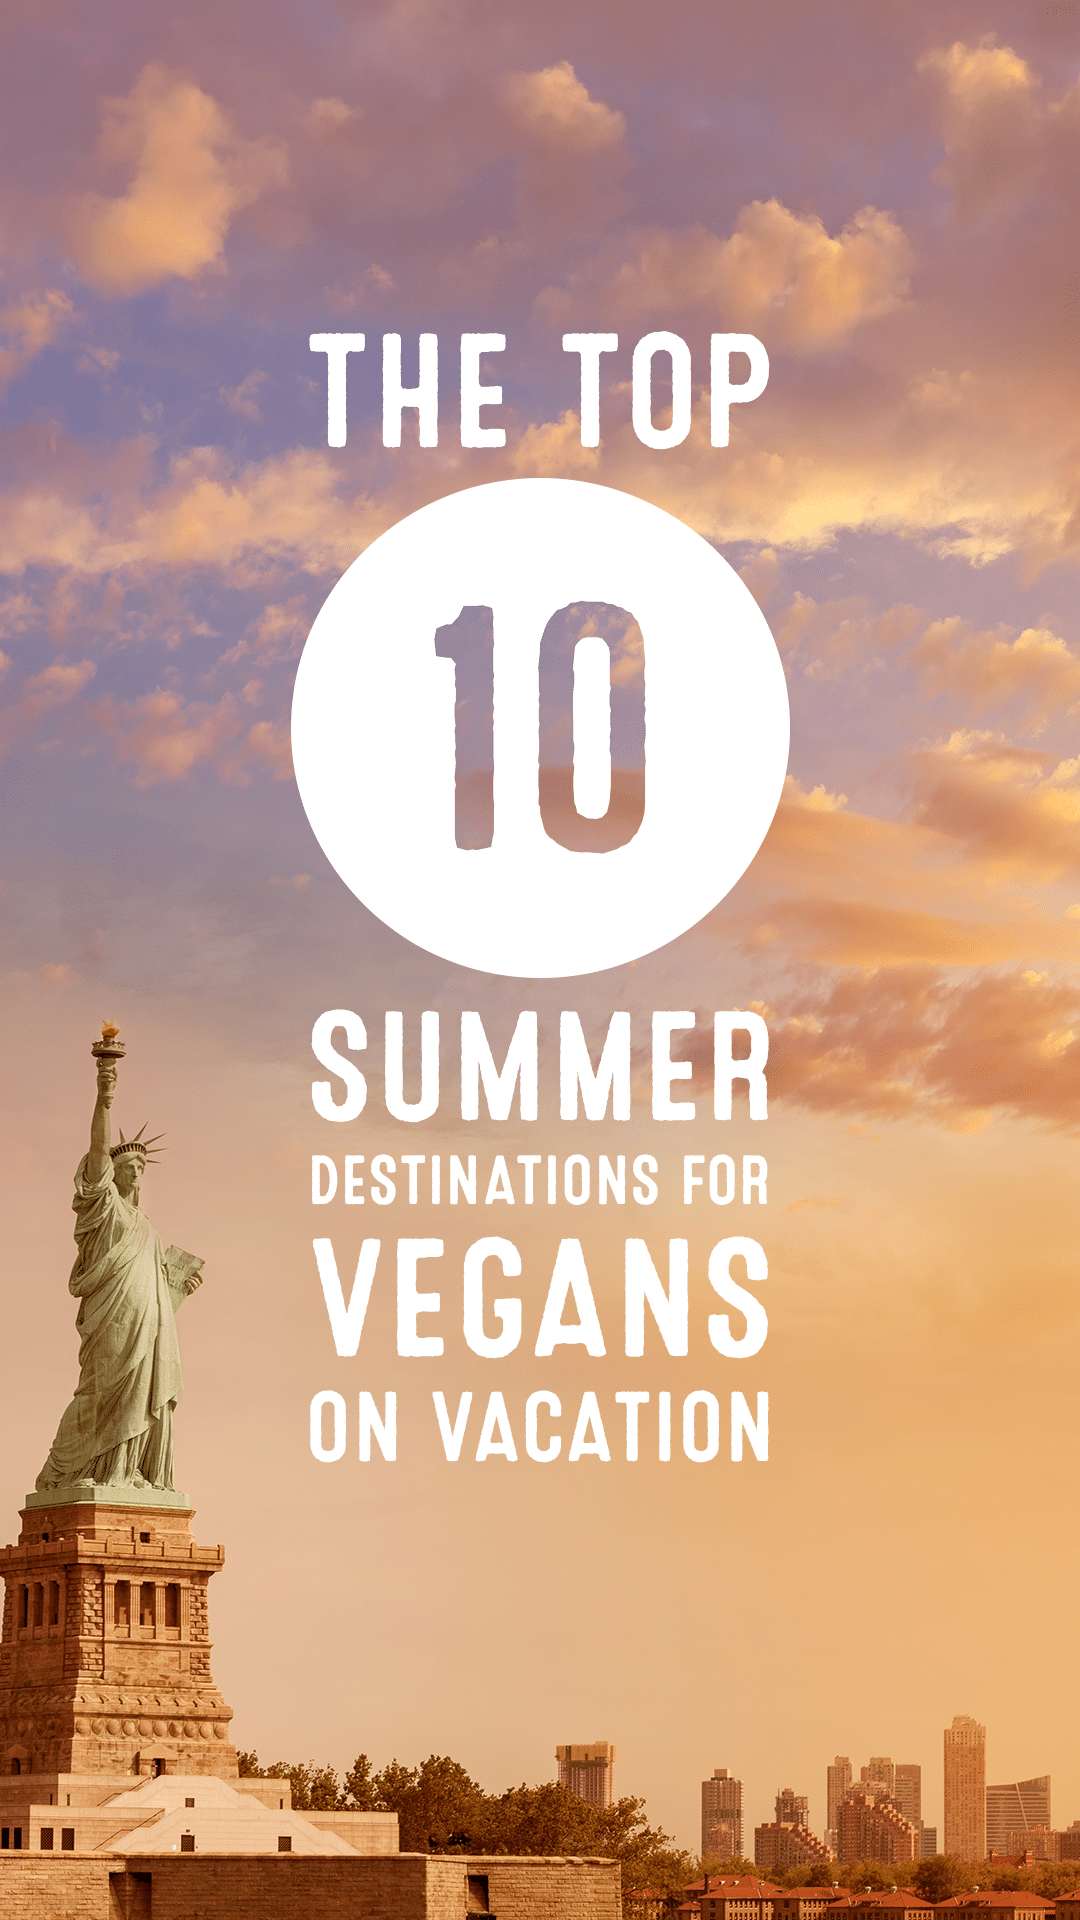 The Top 10 Summer Destinations for Vegans on Vacation